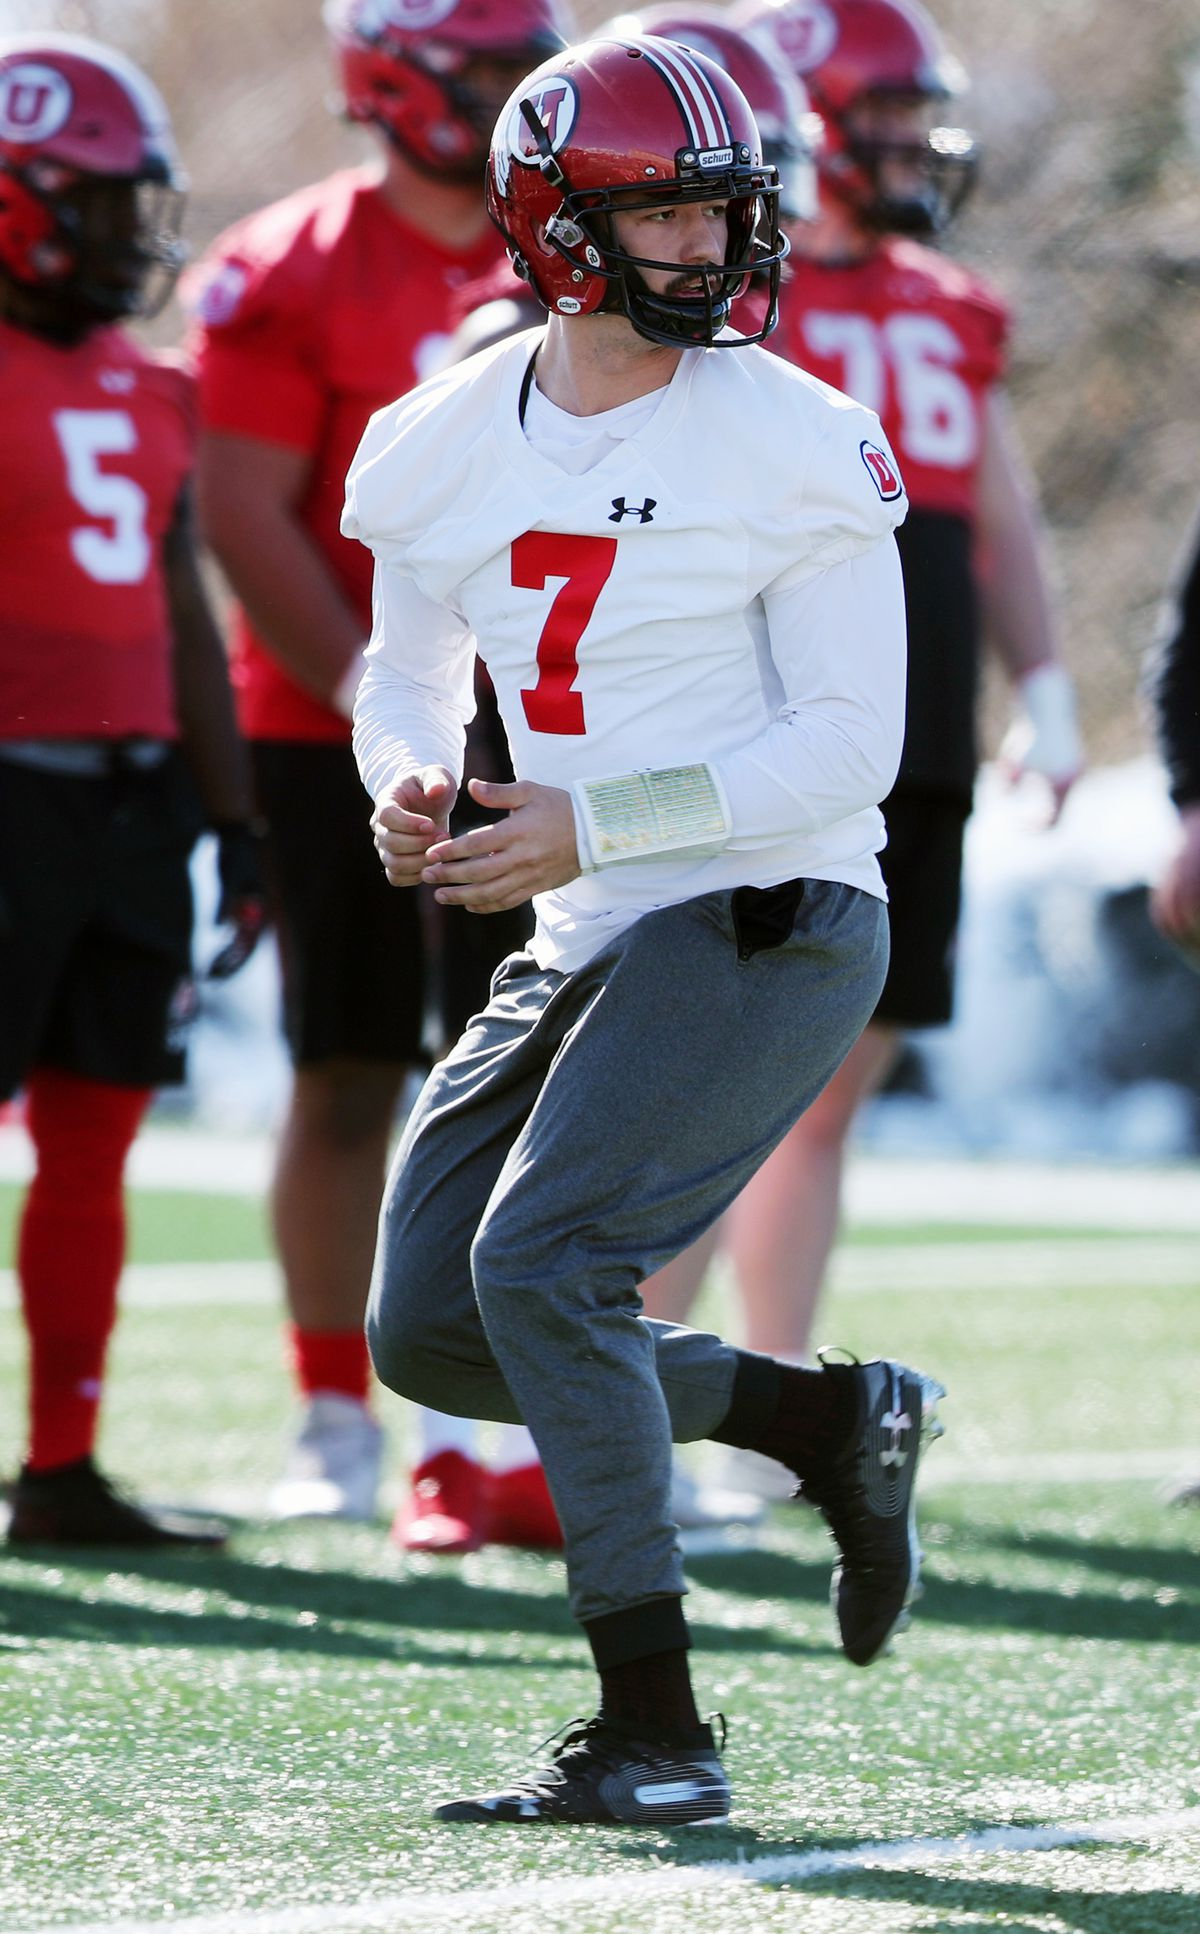 Quarterback Cameron Rising watches after handing off the ball during a drill as the University of Utah football team opens spring campat the Eccles Football Facility practice fields in Salt Lake City on Monday, March 2, 2020.